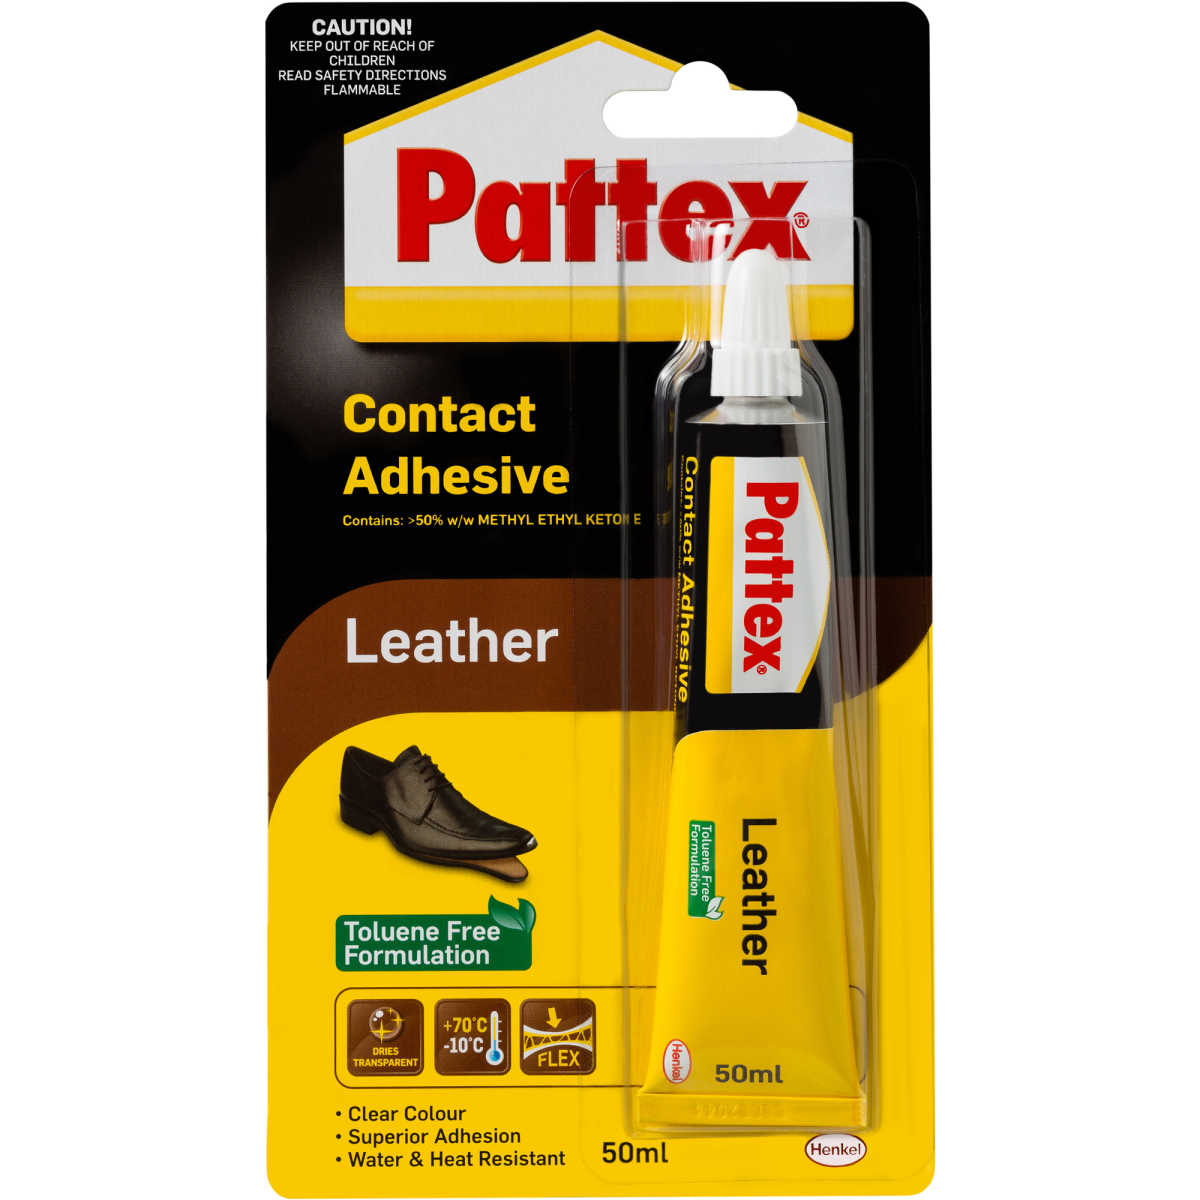 Pattex Kit Pattex Leather Contact Adhesive 50ml